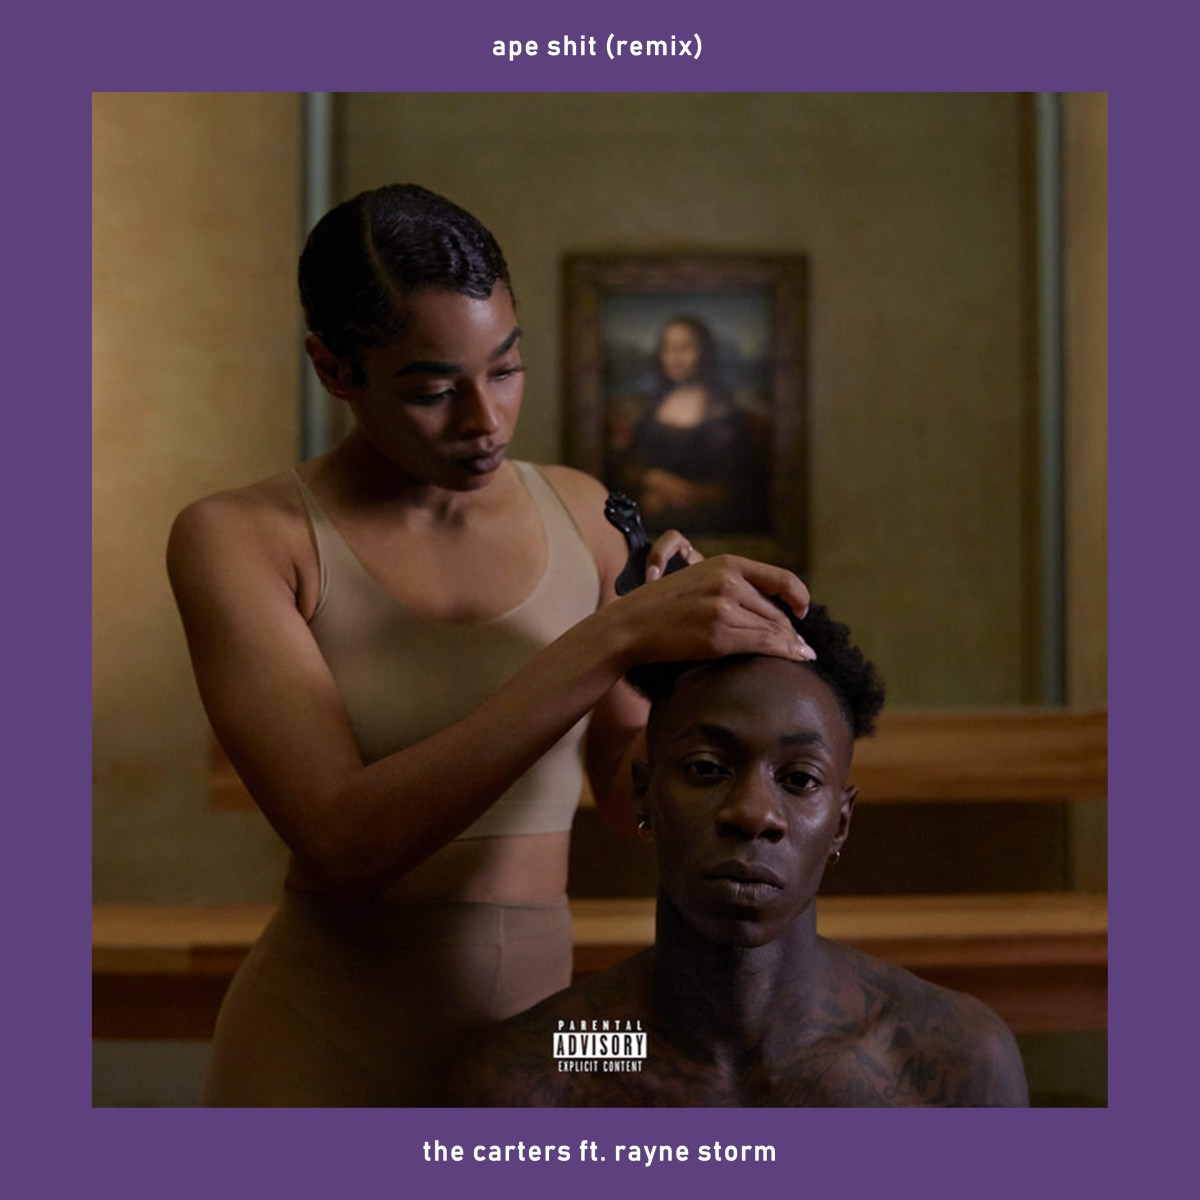 Apeshit (Remix) - The Carters ft. Rayne Storm